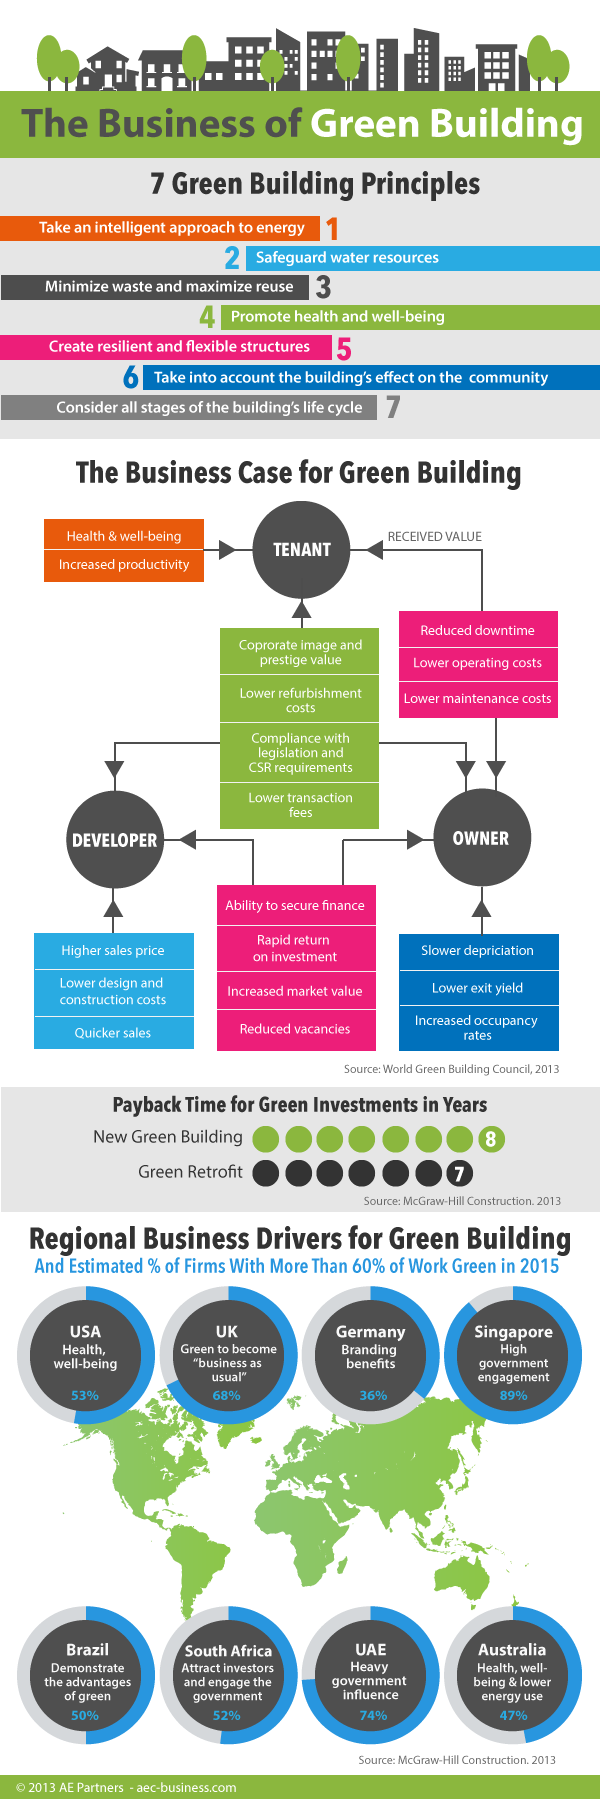 Business of Green Building